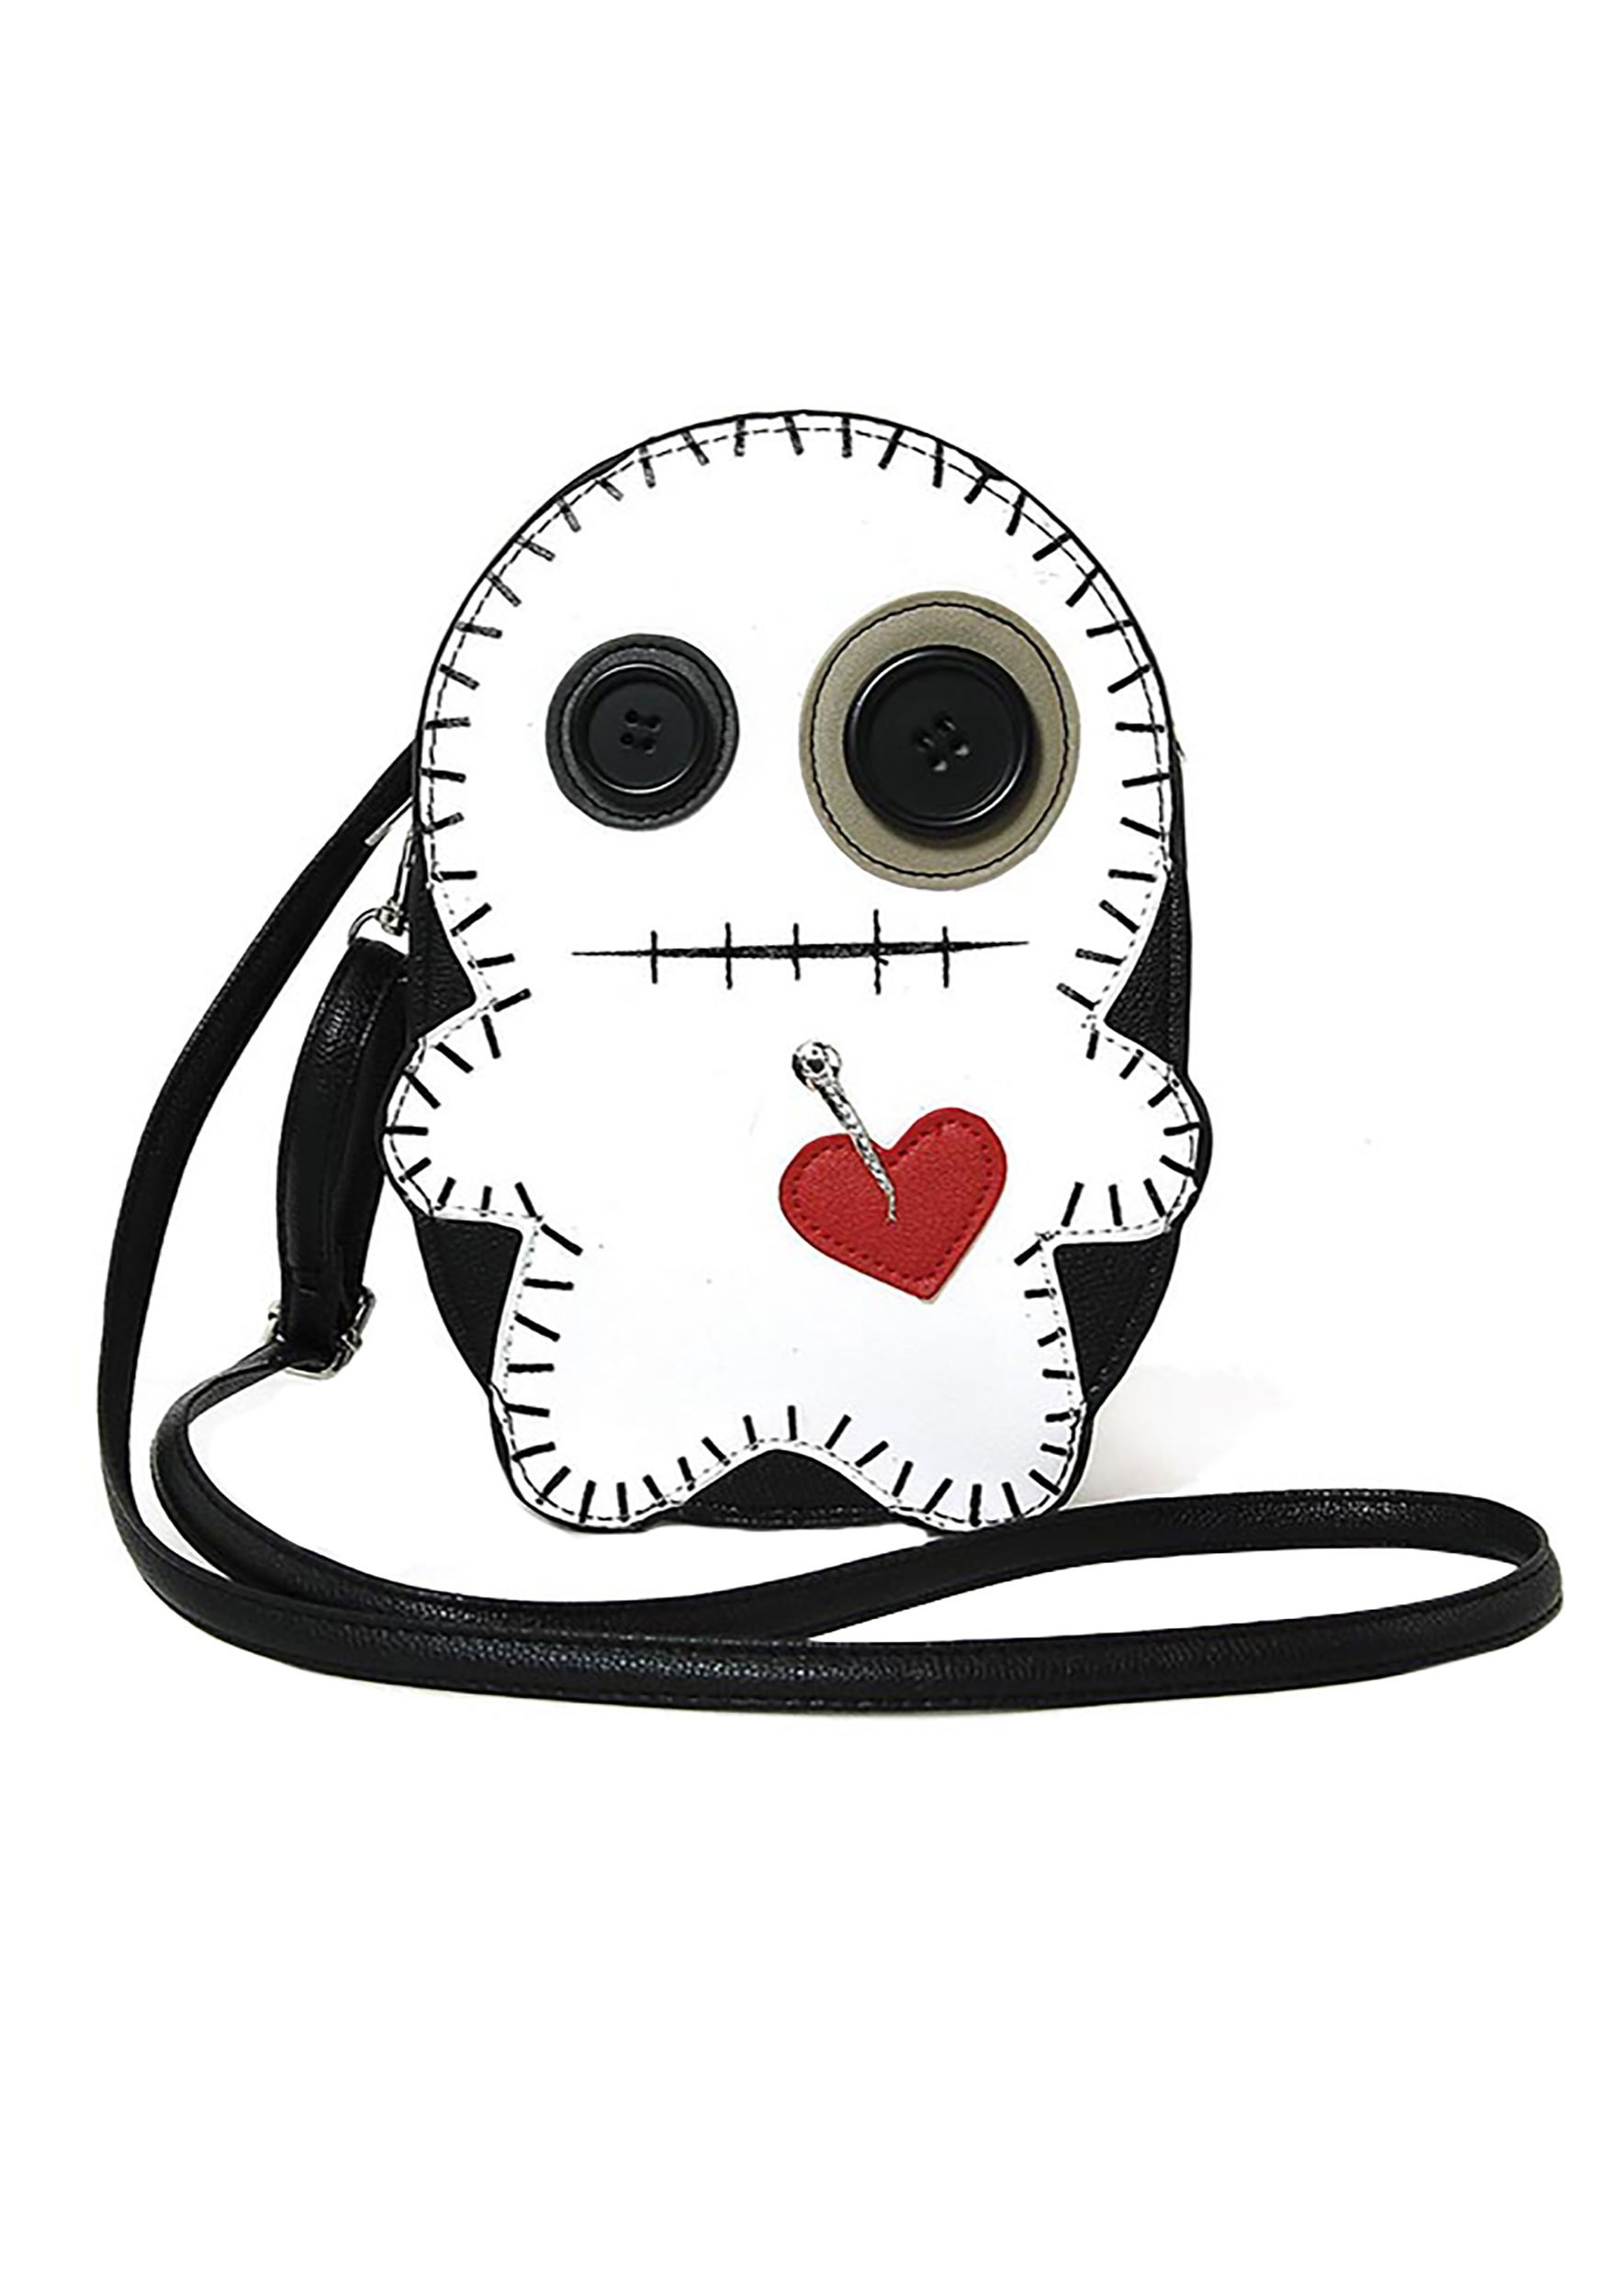 Black/White Voodoo Doll Purse (CEC86013UB-ST CEC86013UB) photo